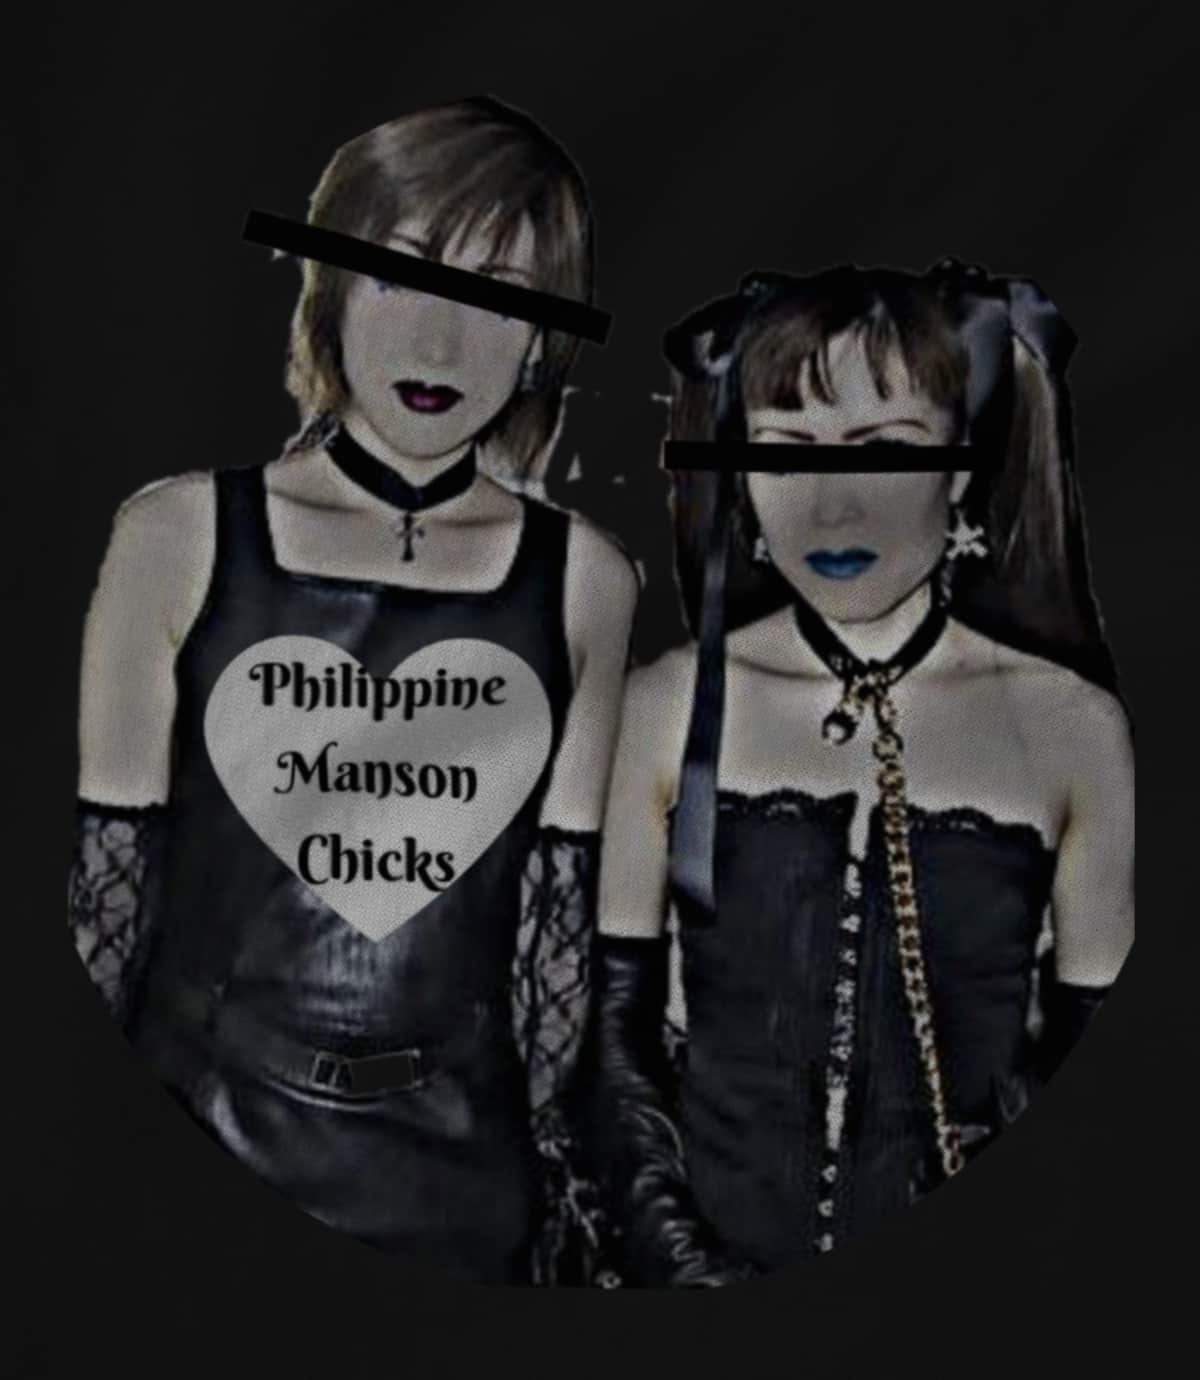 From the dungeon podcast  philippine manson chicks ii 1535125004